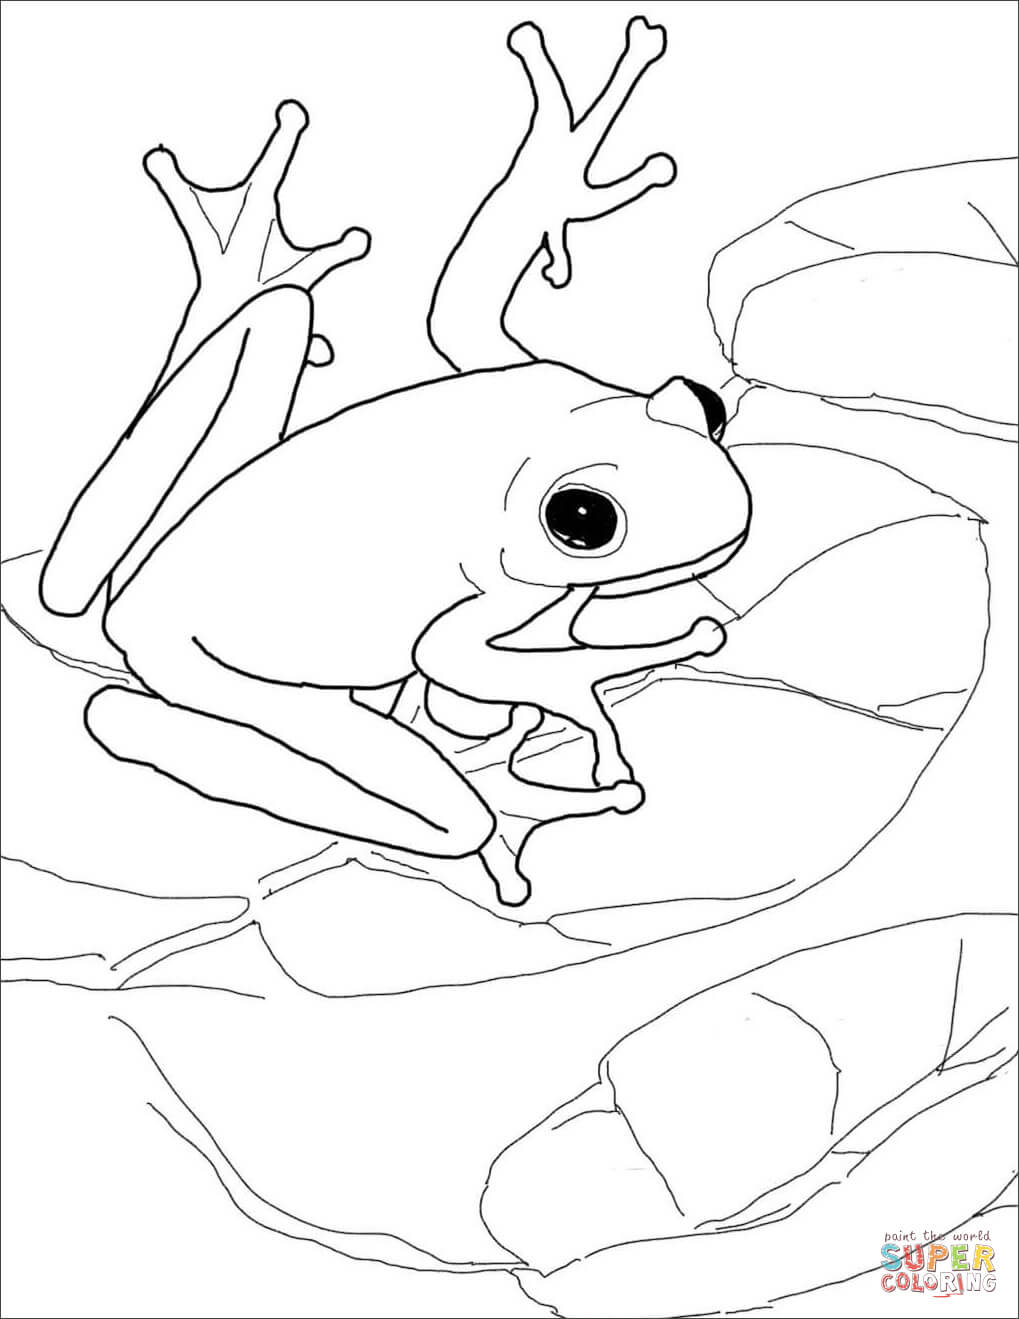 Green tree frog coloring page